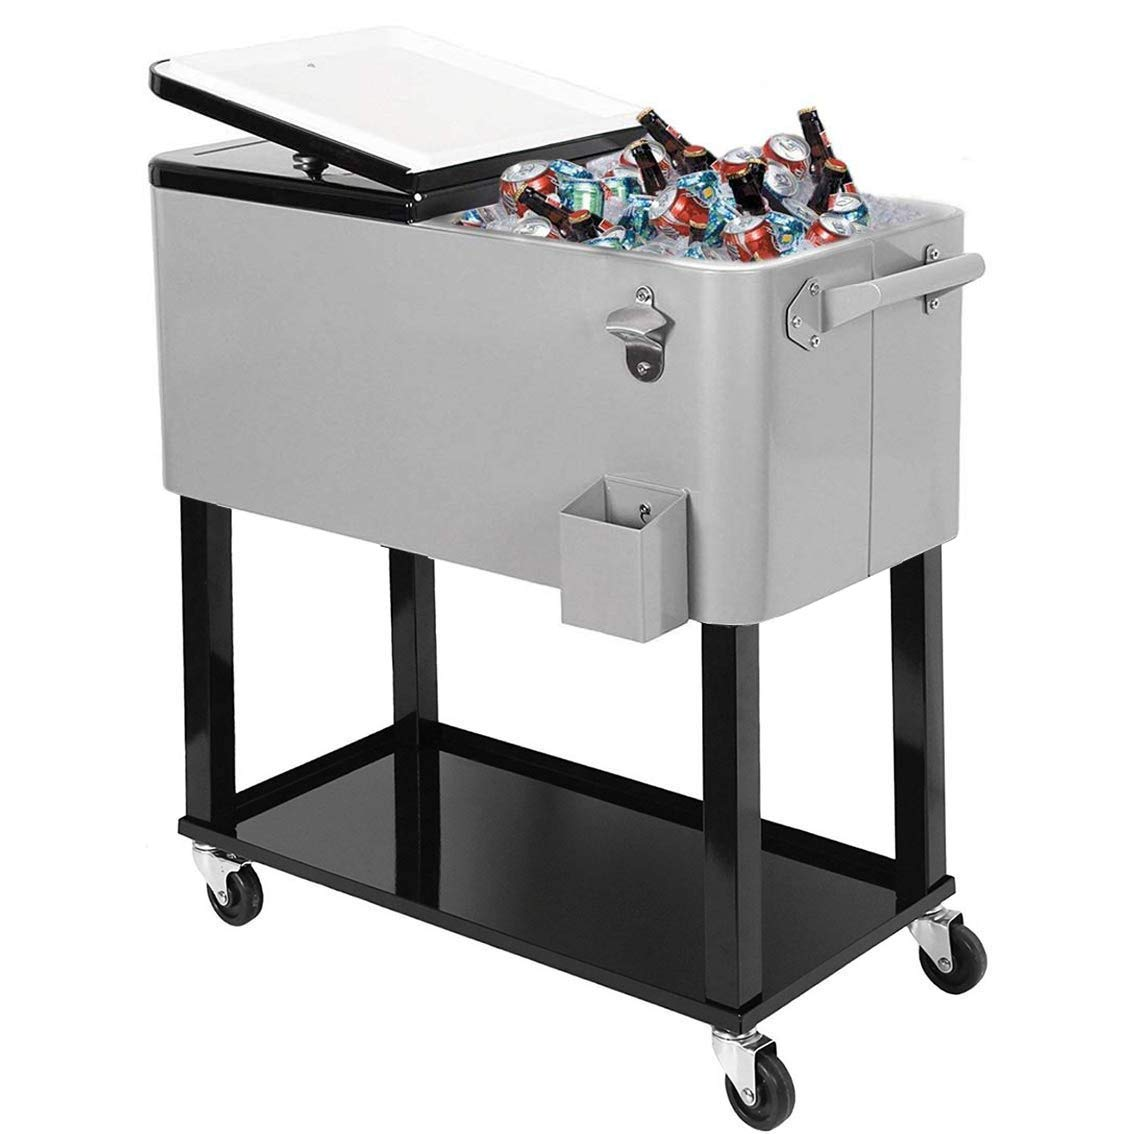 Clevr 80 Quart Qt Rolling Cooler Ice Chest for Outdoor Patio Deck Party, Grey, Portable Party Bar Cold Drink Beverage Cart Tub, Backyard Cooler Trolley on Wheels with Shelf, Stand, Bottle Opener by Clevr